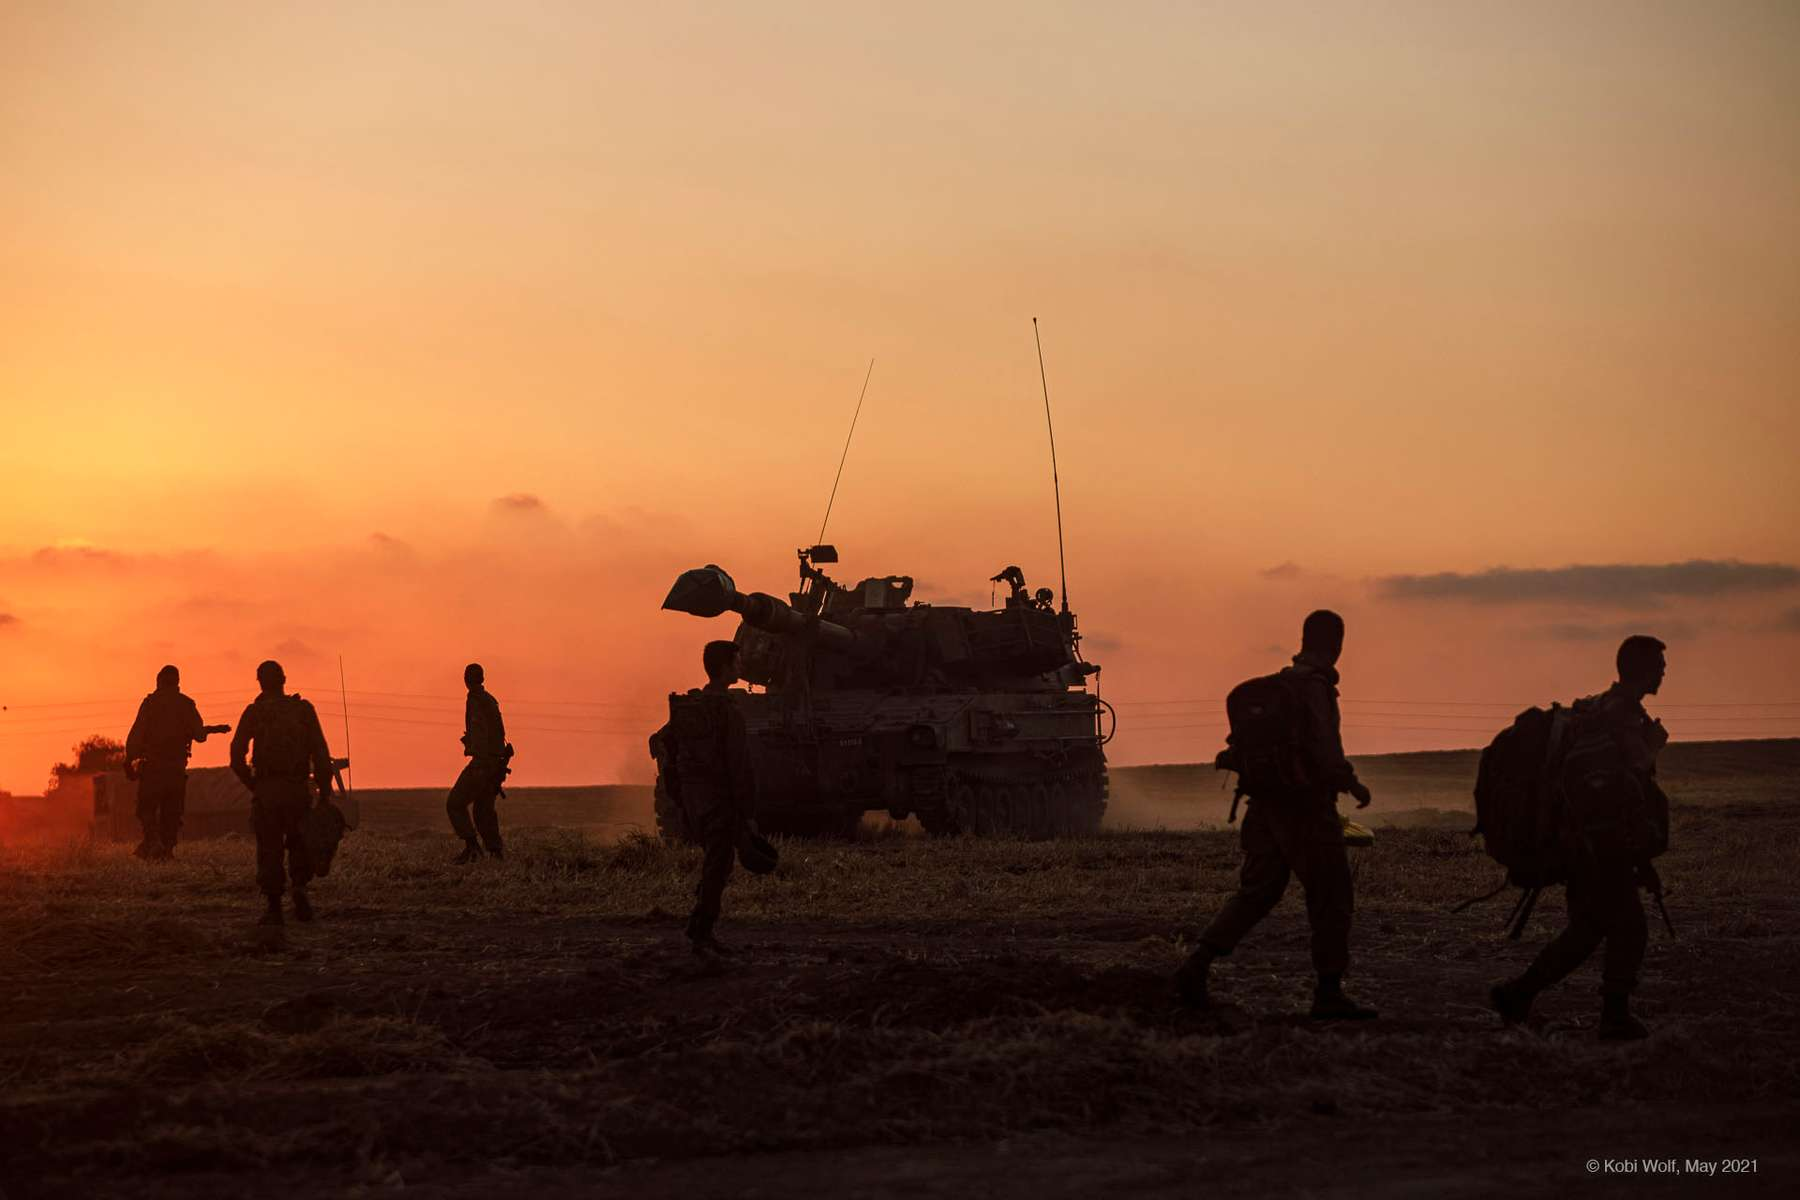 Israeli soldiers beside a cannon In Gaza border Israel, Thursday, May 14, 2021 photographer: Kobi Wolf